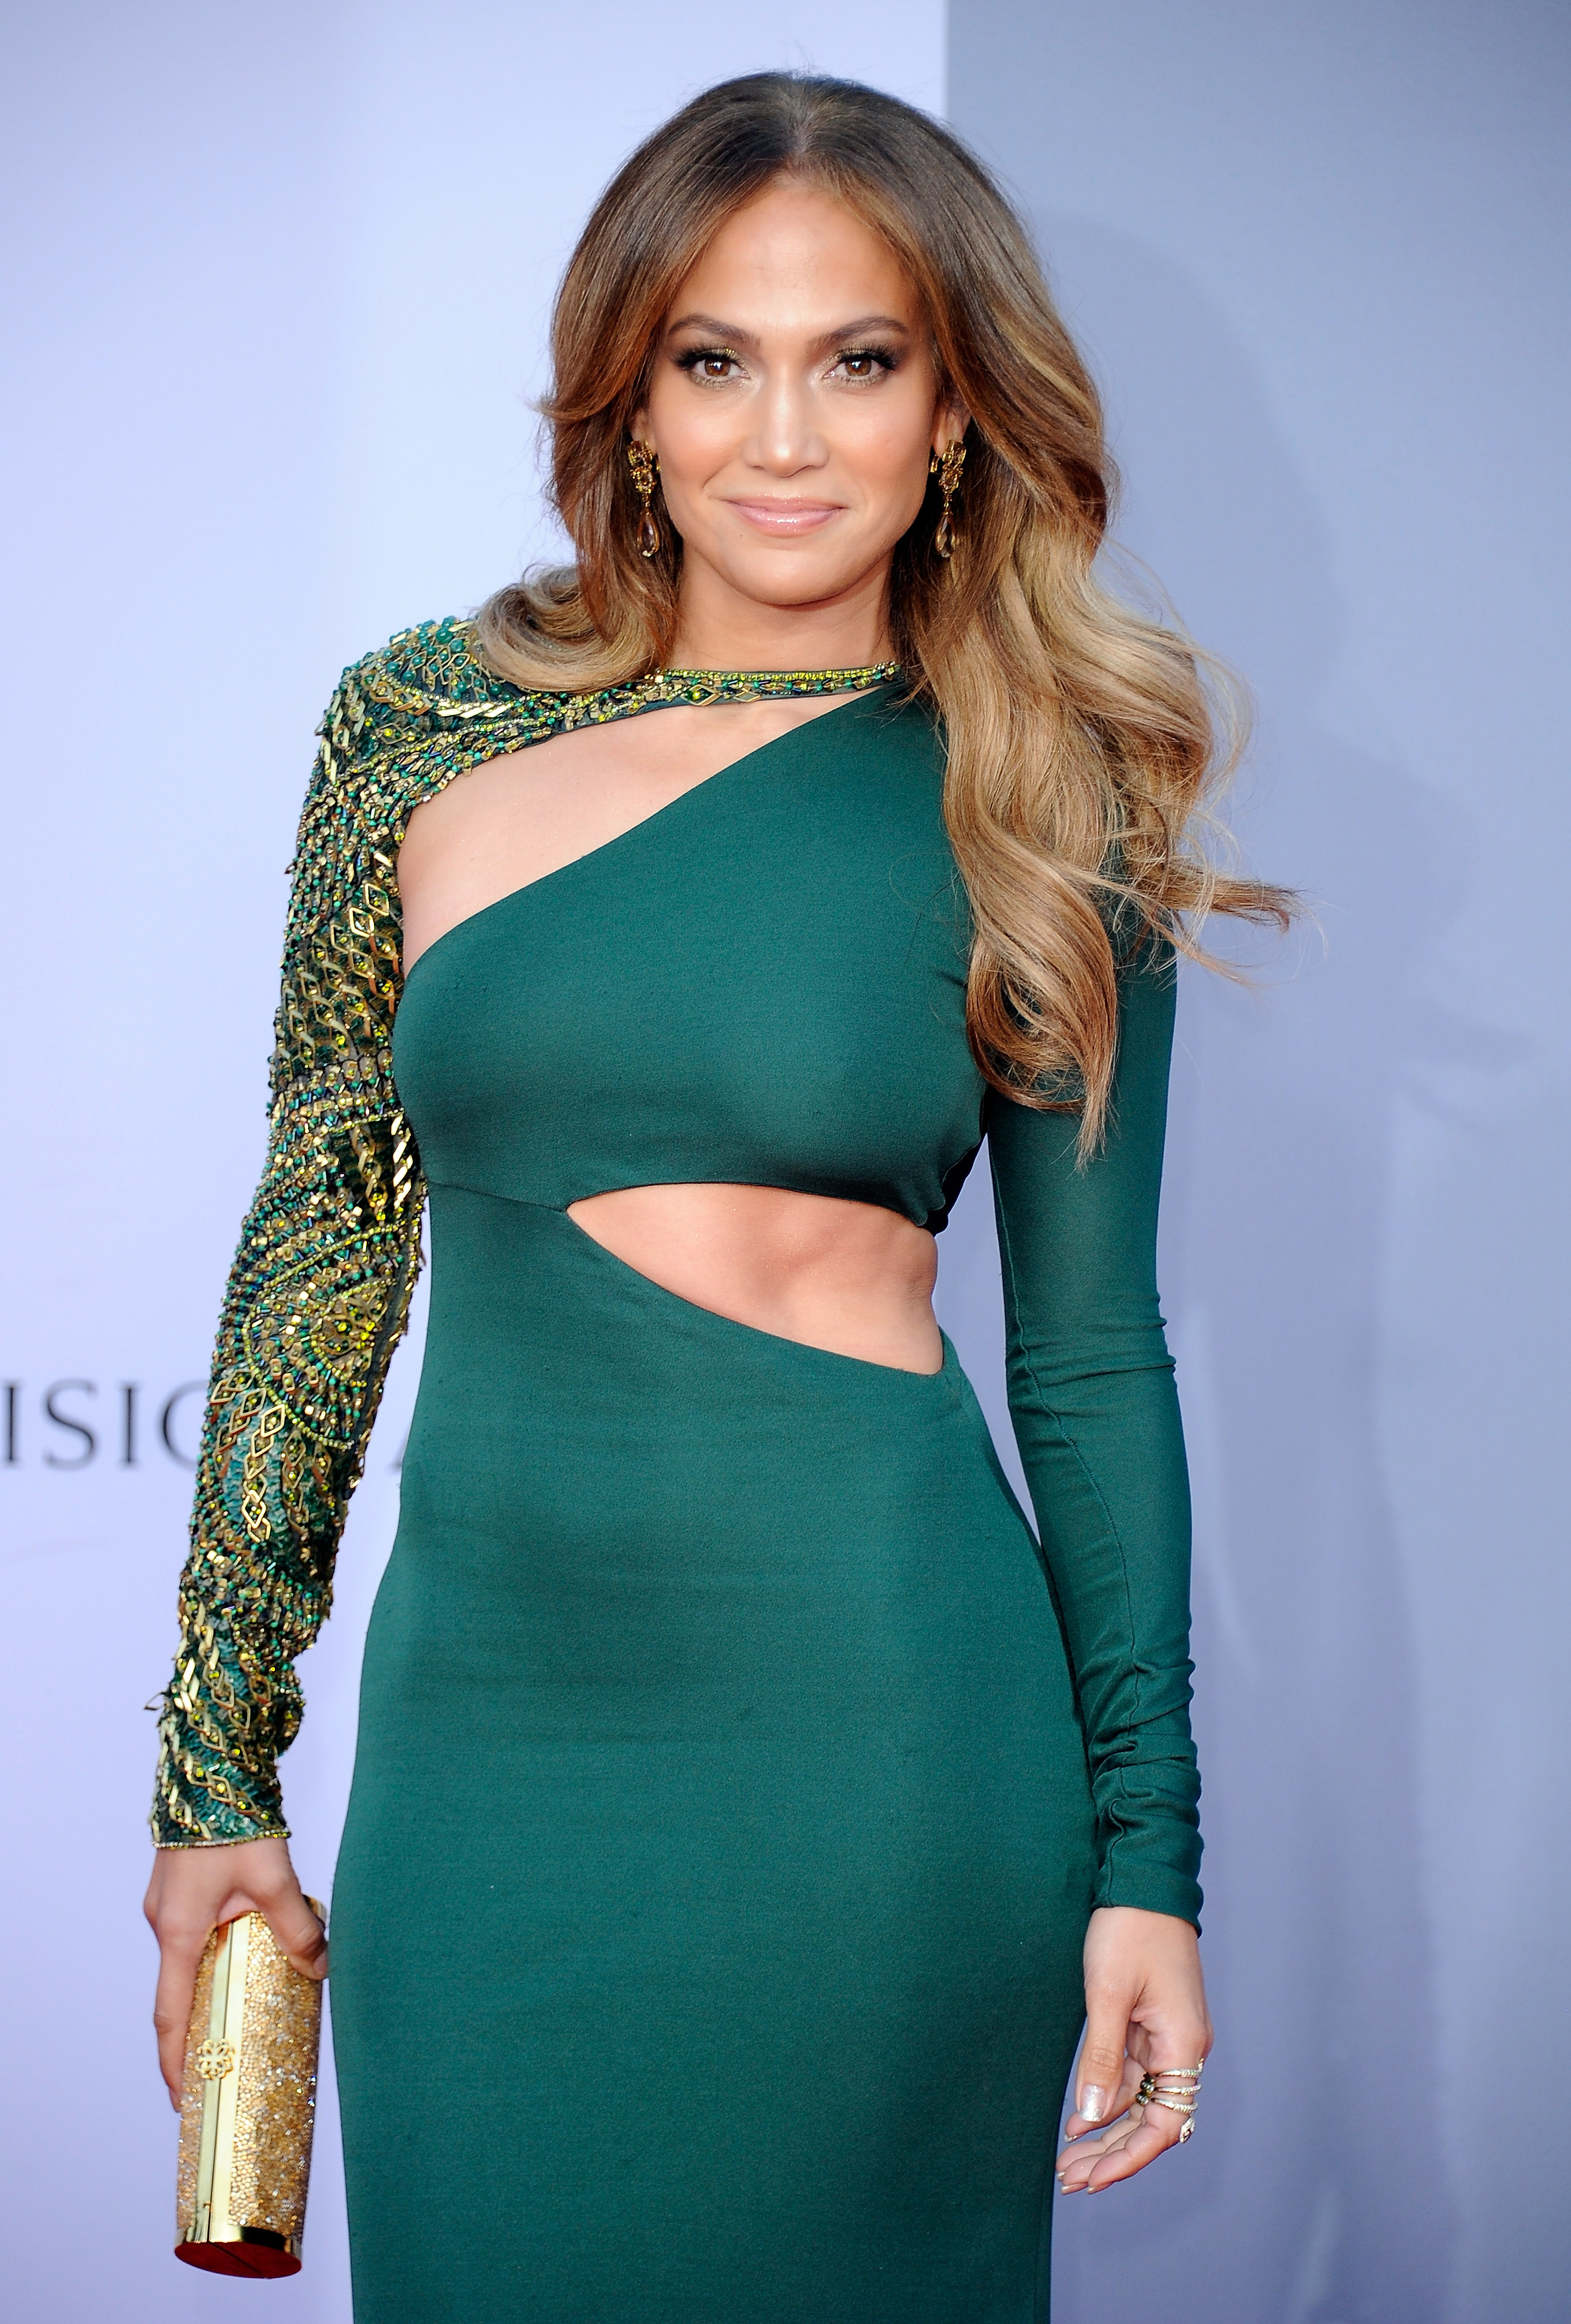 Jennifer Lopez at the BAFTA Brits to Watch event in LA.